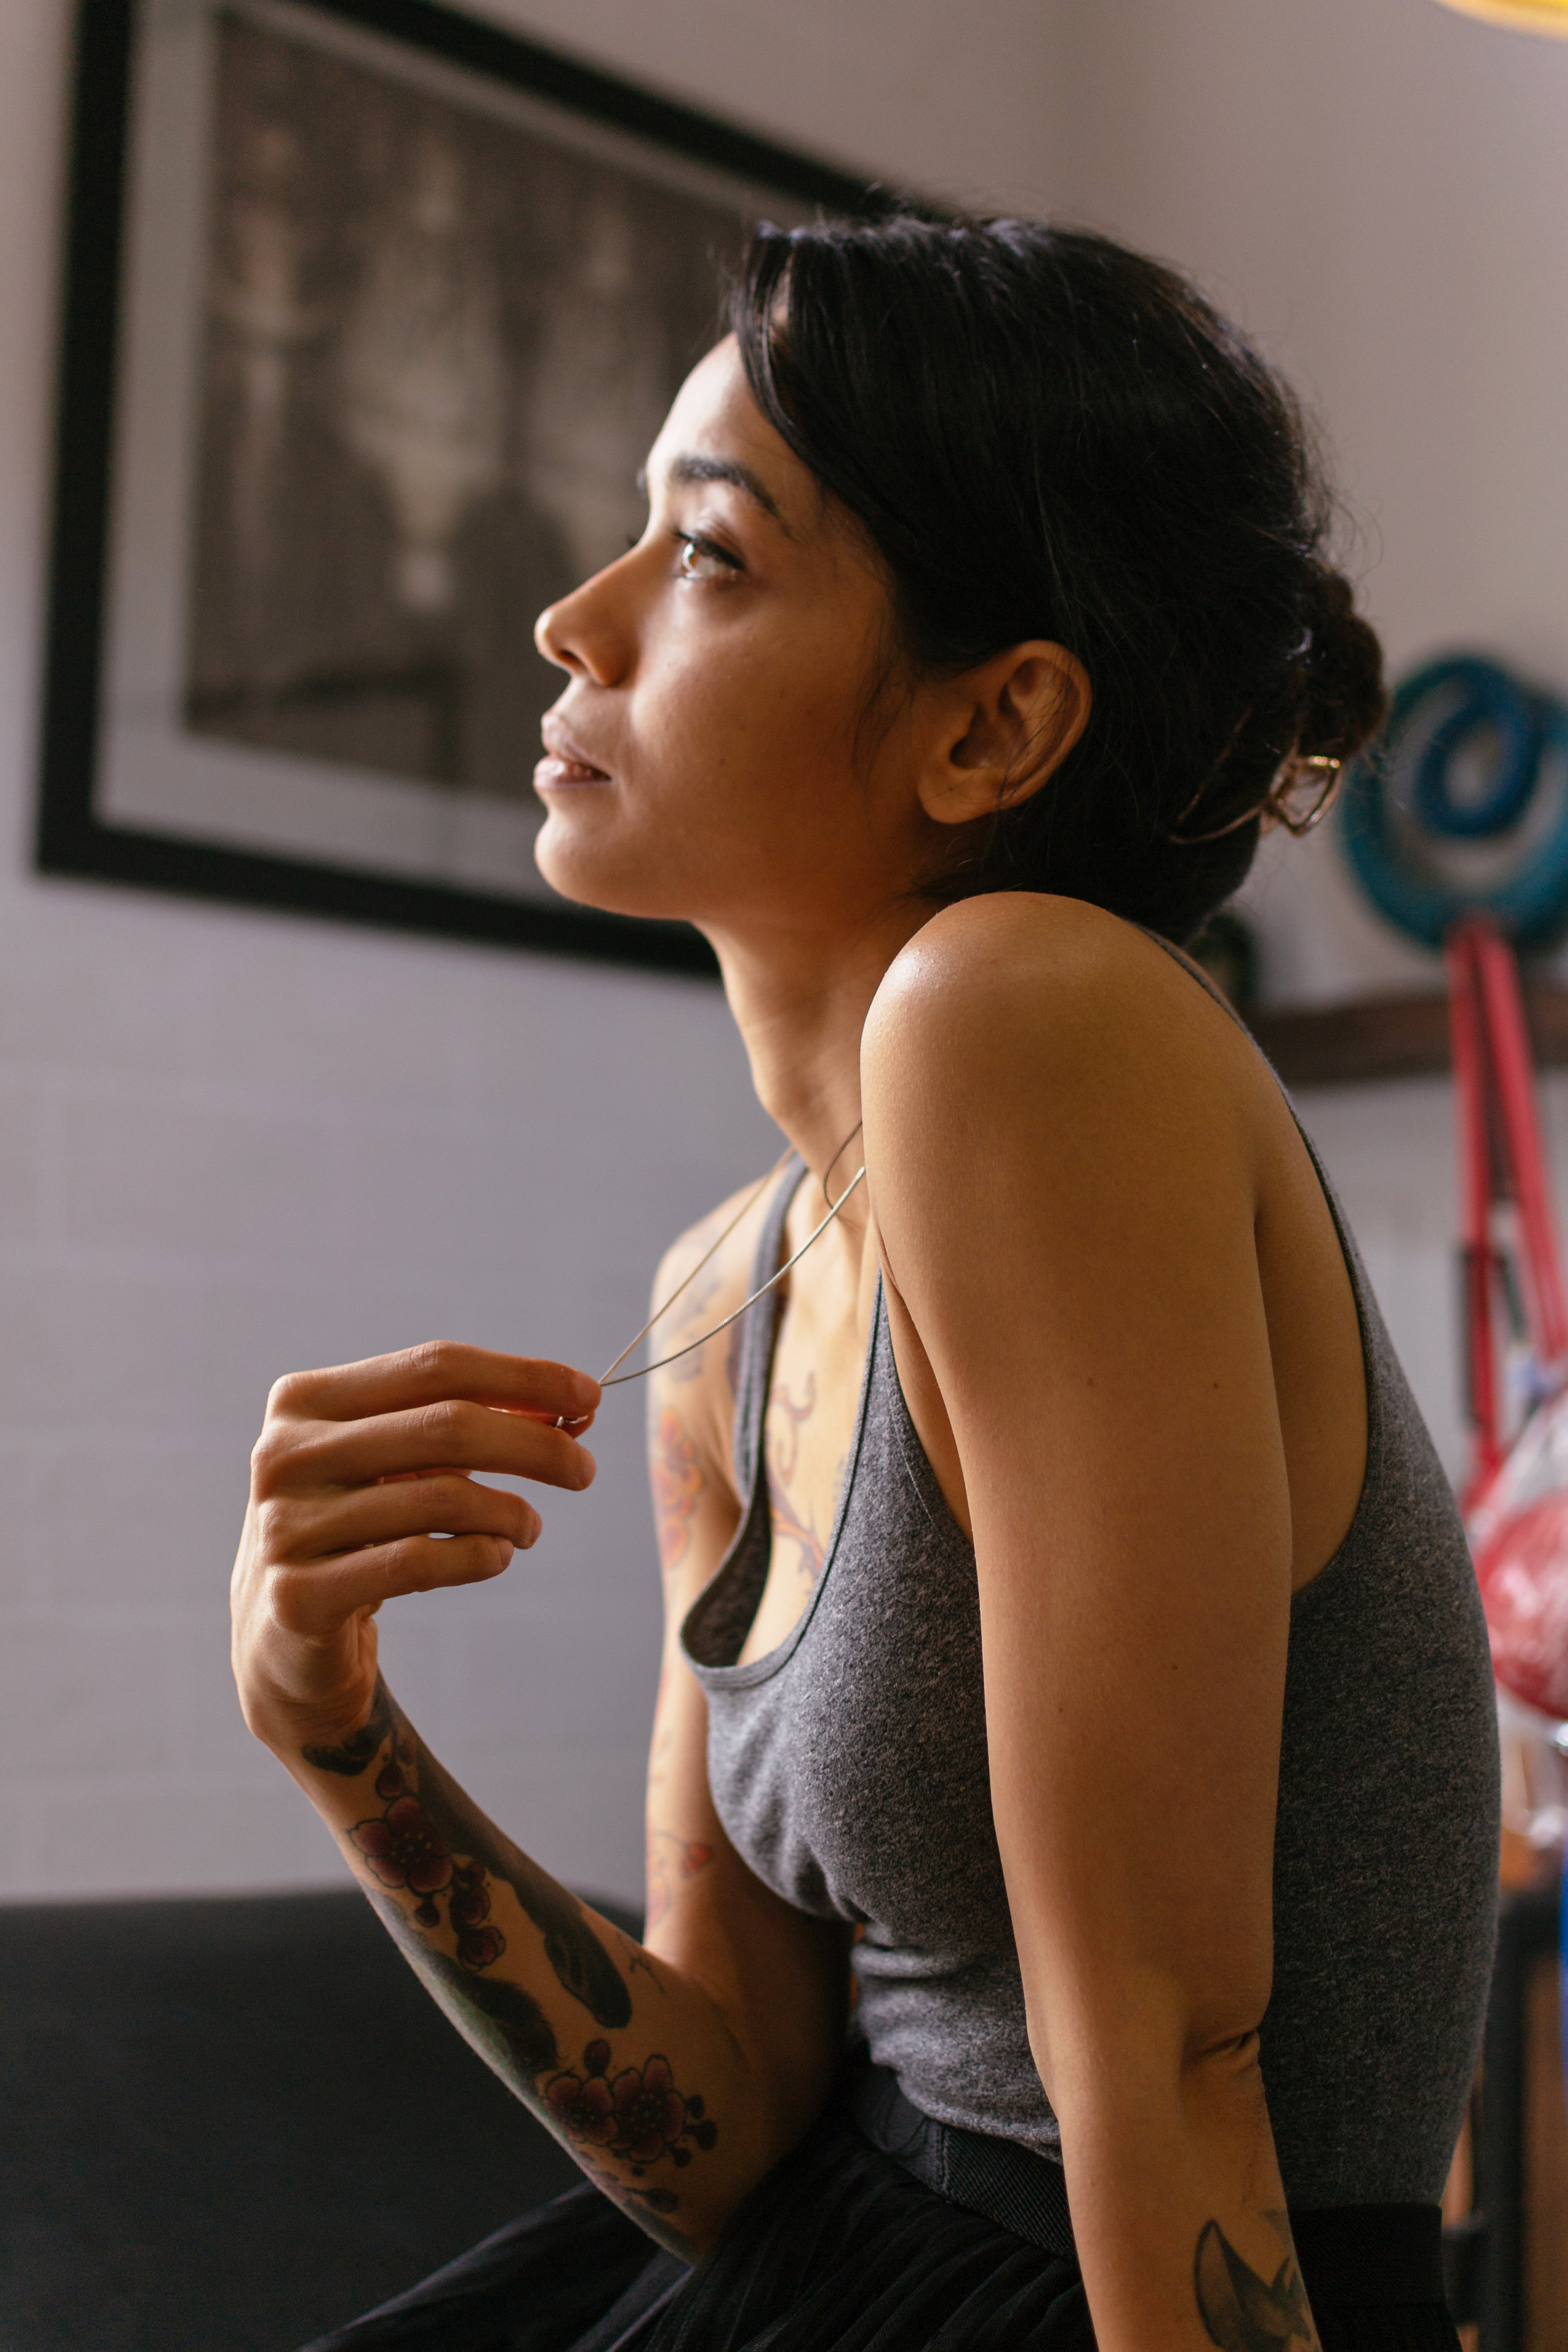 - Originally a graphic designer by occupation, Shyamli wanted a platform that would help her to experiment more with designs that are more expressive. Now, she has been tattooing for almost 9 years and is among the most sought-after female tattoo artists in Delhi.